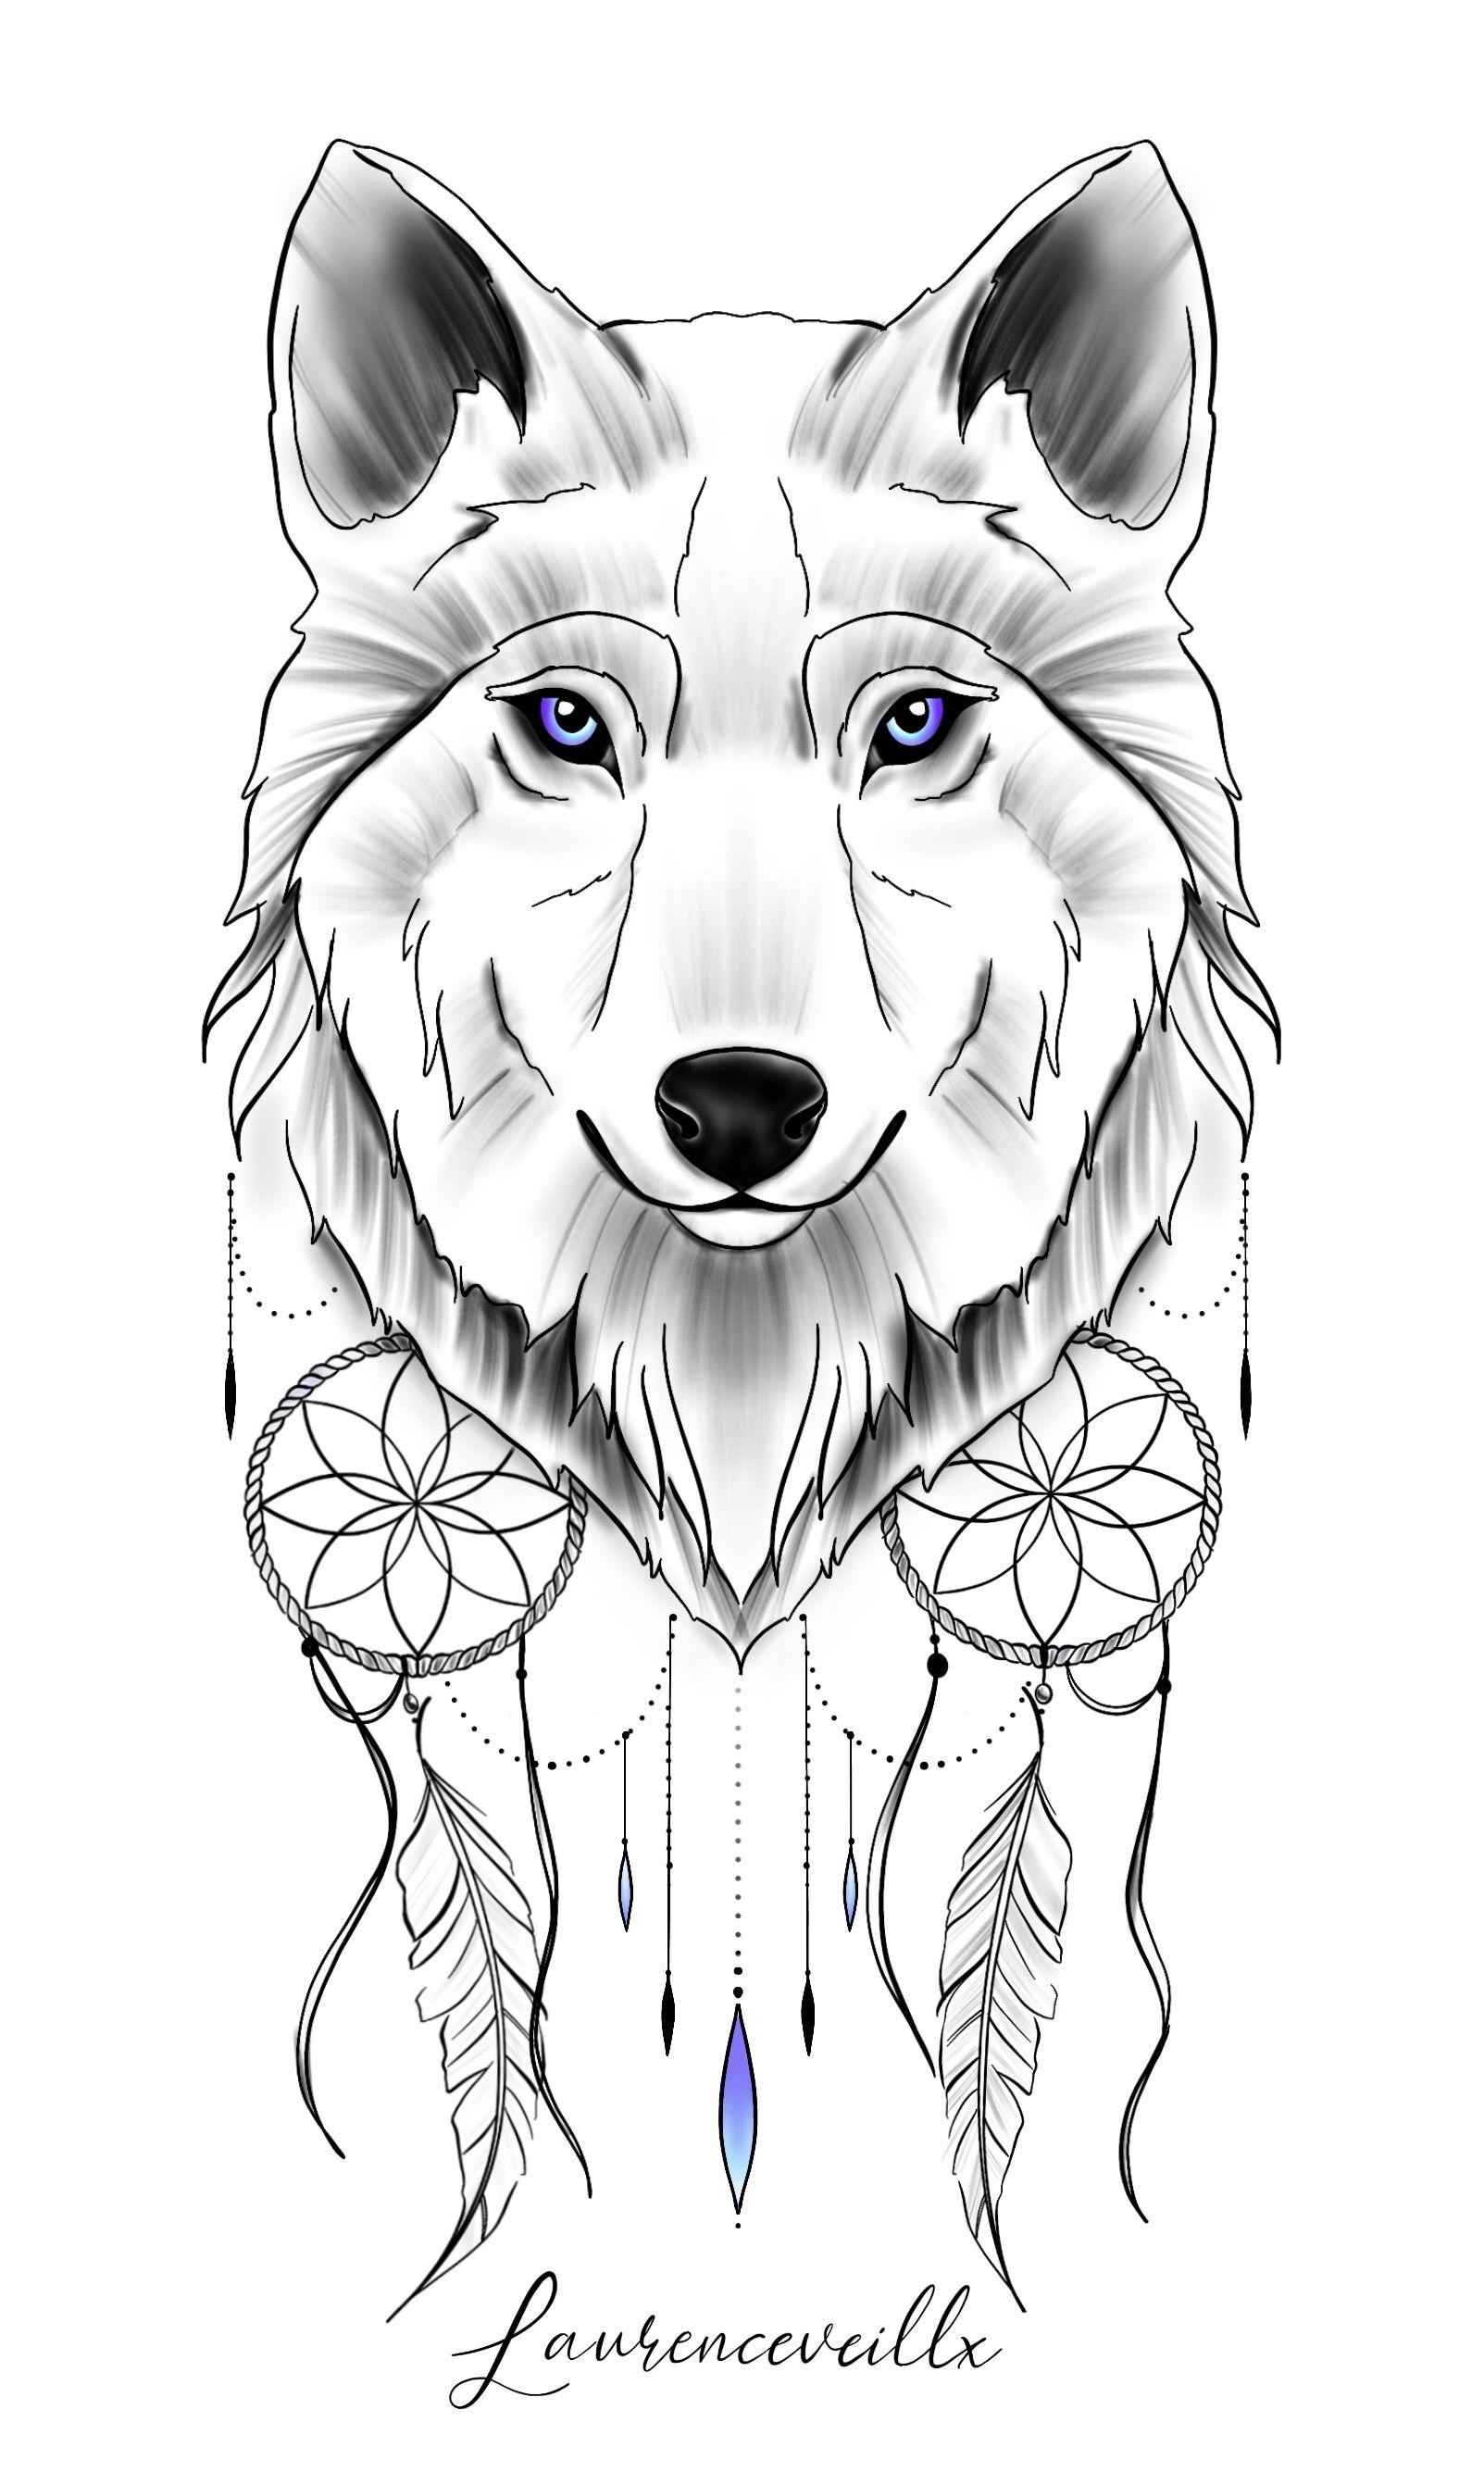 Wolf Dreamcatcher Blue Tattoo Design Laurenceveillx In 2020 Blue Tattoo Wolf Dreamcatcher Wolf Dreamcatcher Tattoo